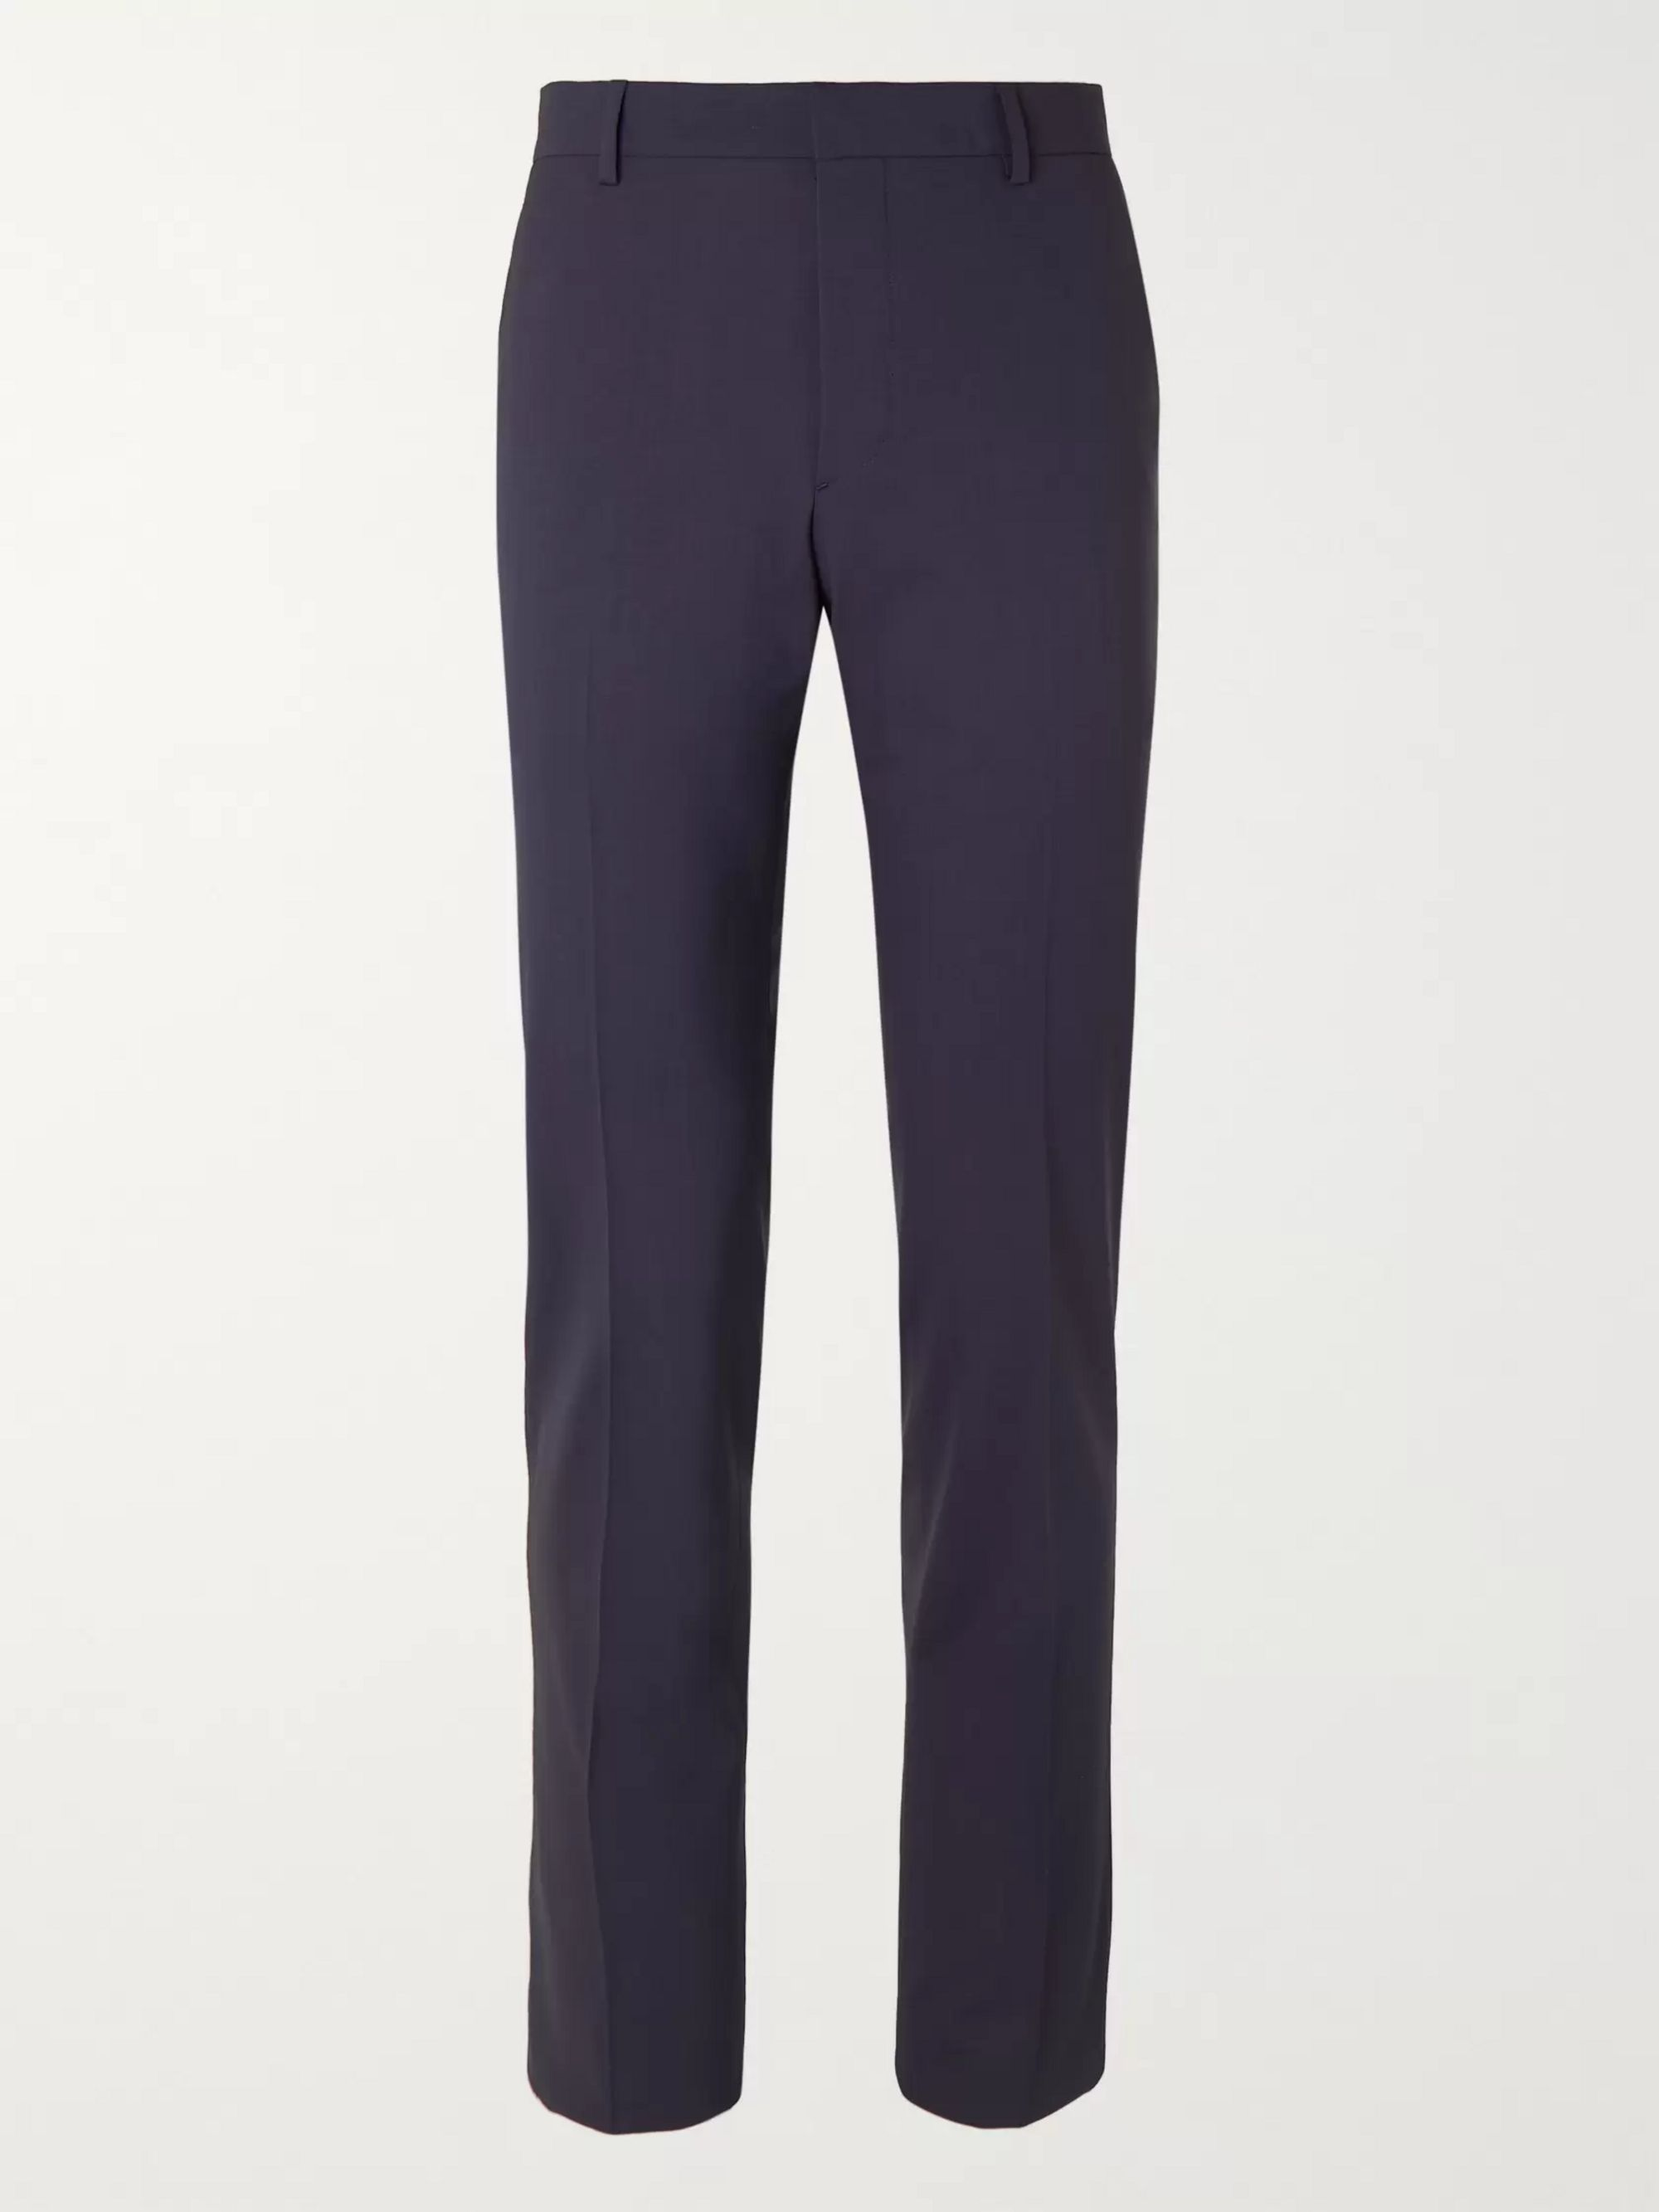 Prada Navy Tela Slim-Fit Virgin Wool-Blend Suit Trousers